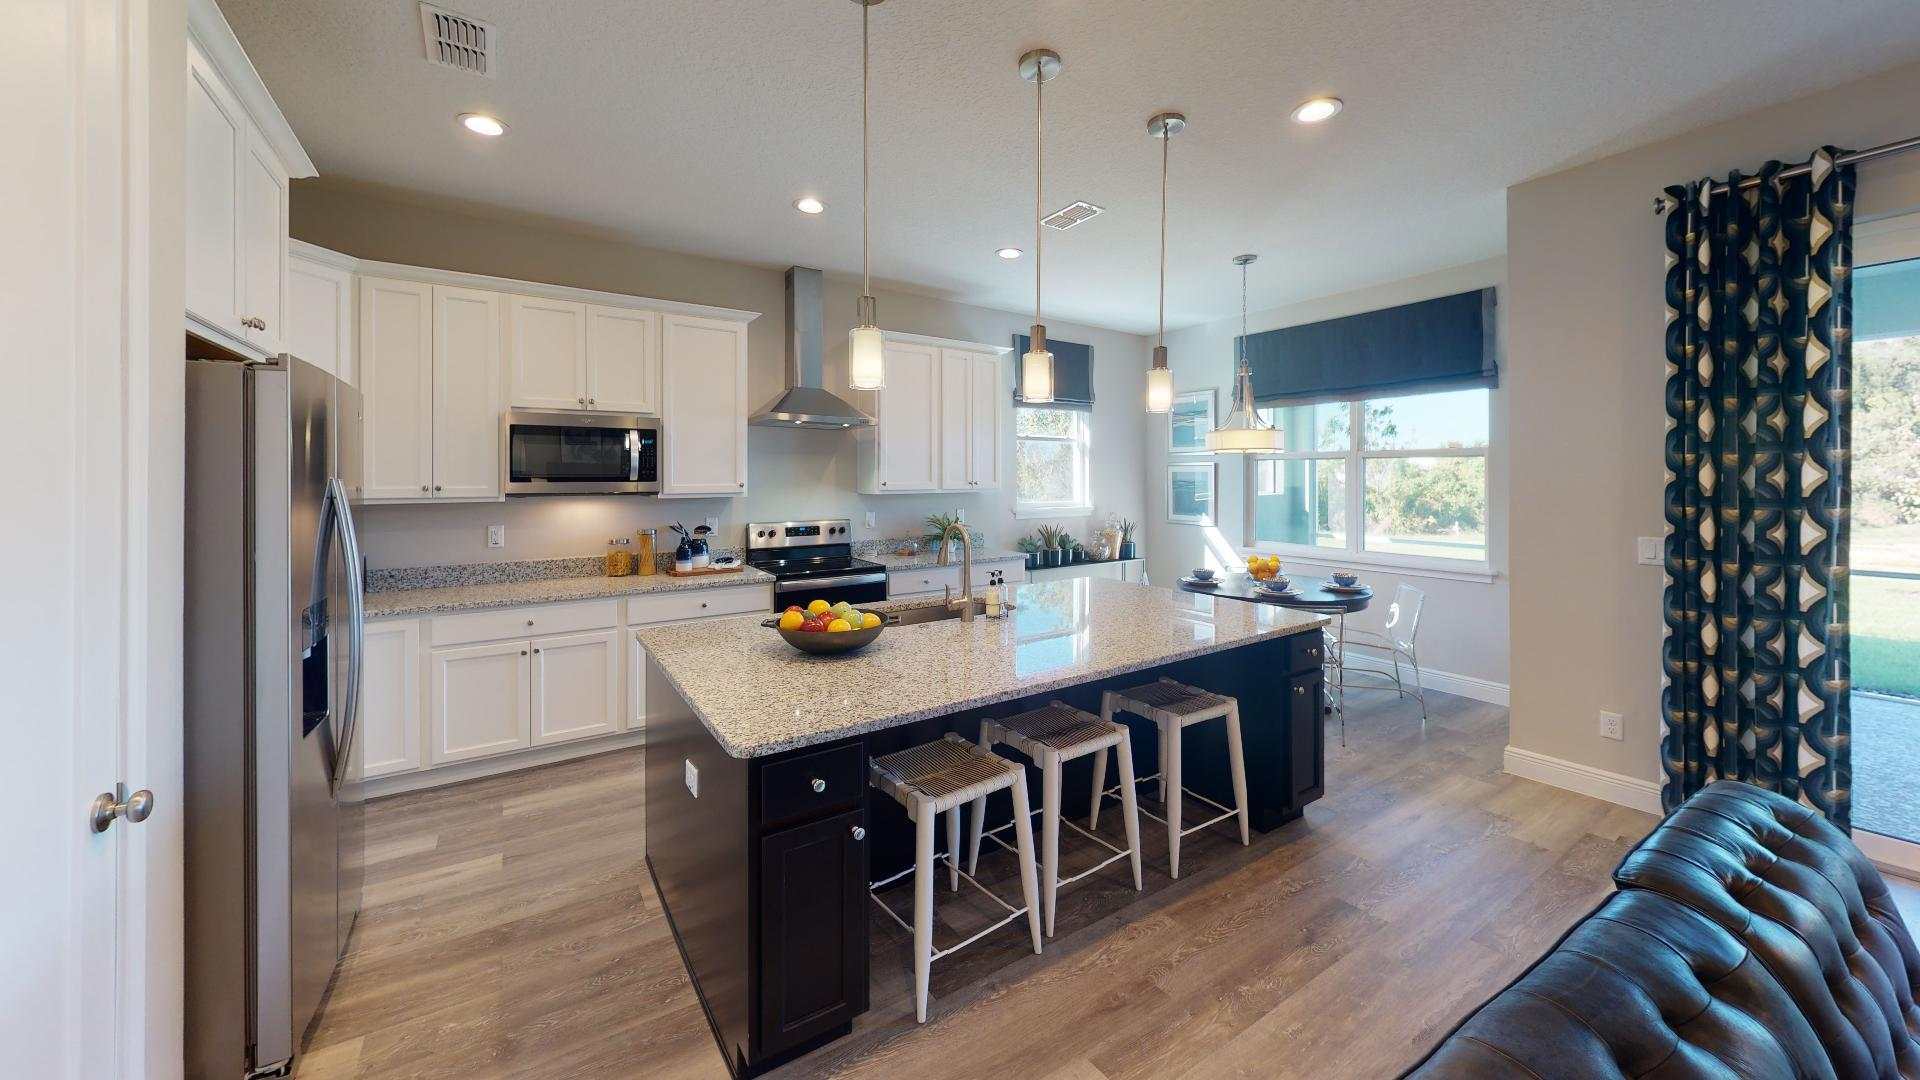 Kitchen featured in the Linburn II By Regal Park Homes in Orlando, FL